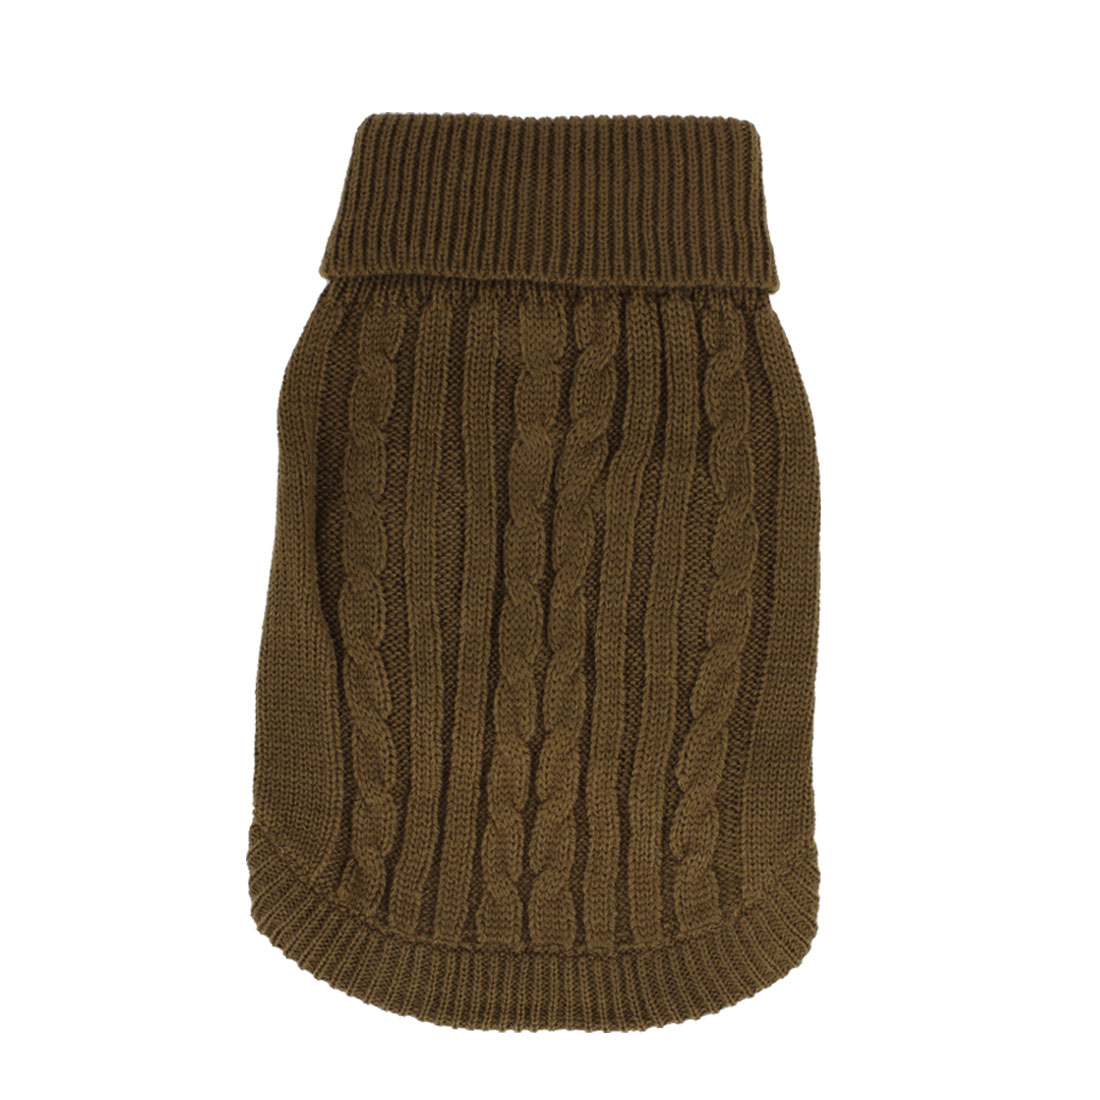 Pet Dog Doggy Ribbed Cuff Twisted Knitwear Turtleneck Apparel Sweater Coffee Color Size XS